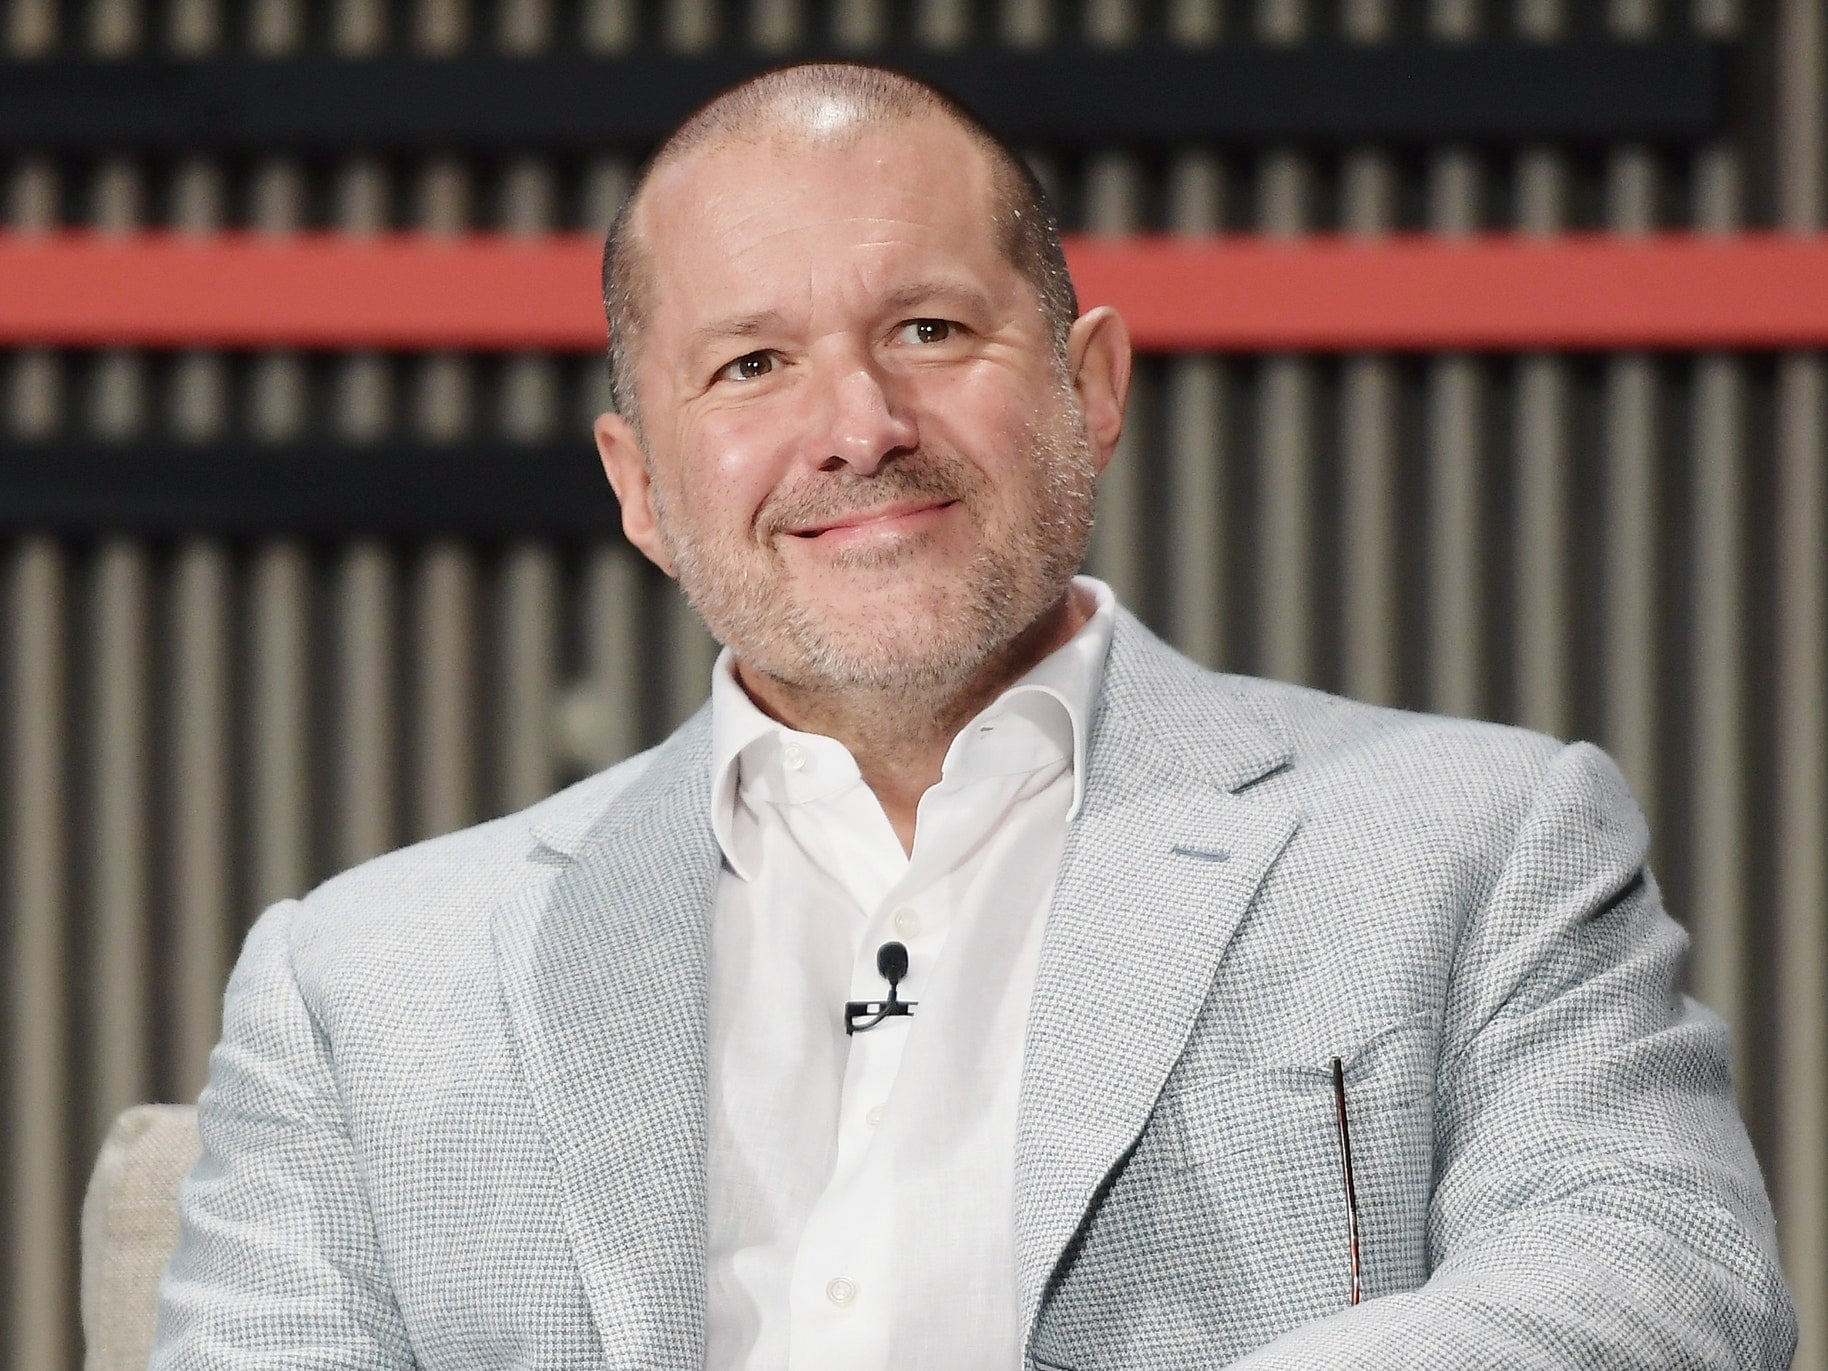 Jony Ive leaves Apple to start his own design company